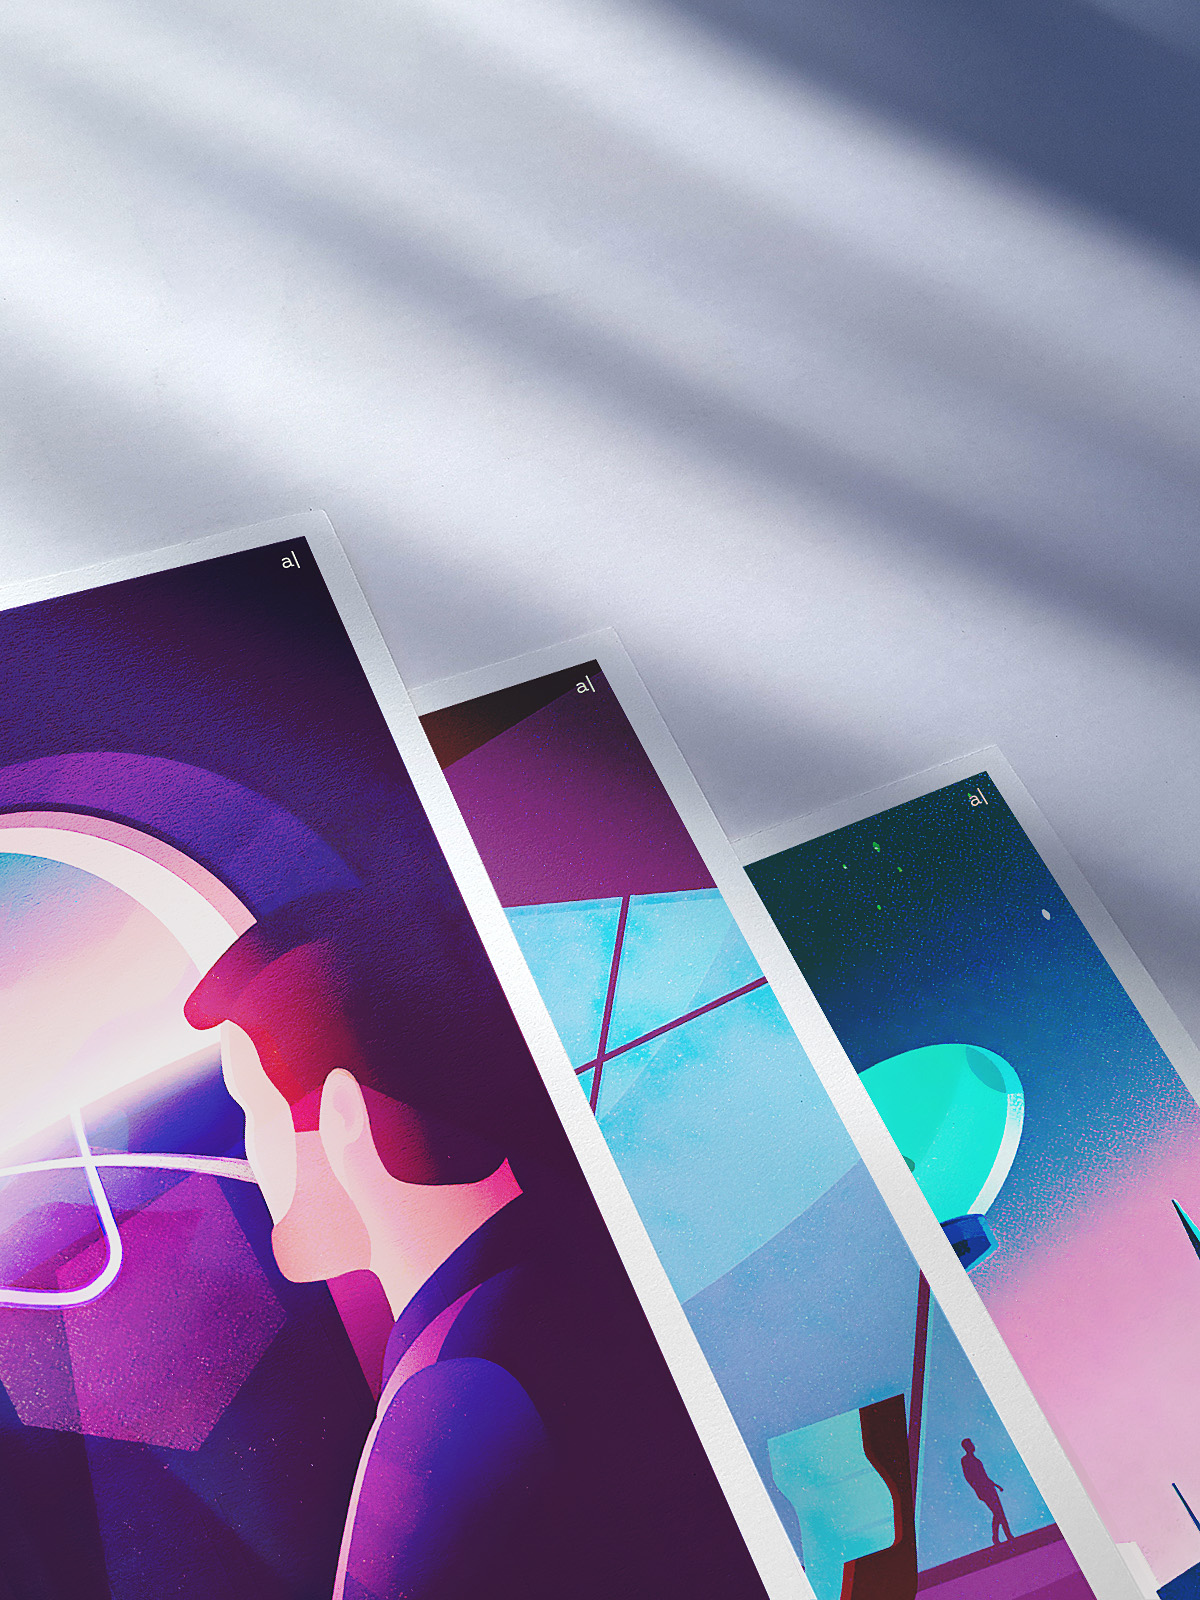 Commercial illustrations